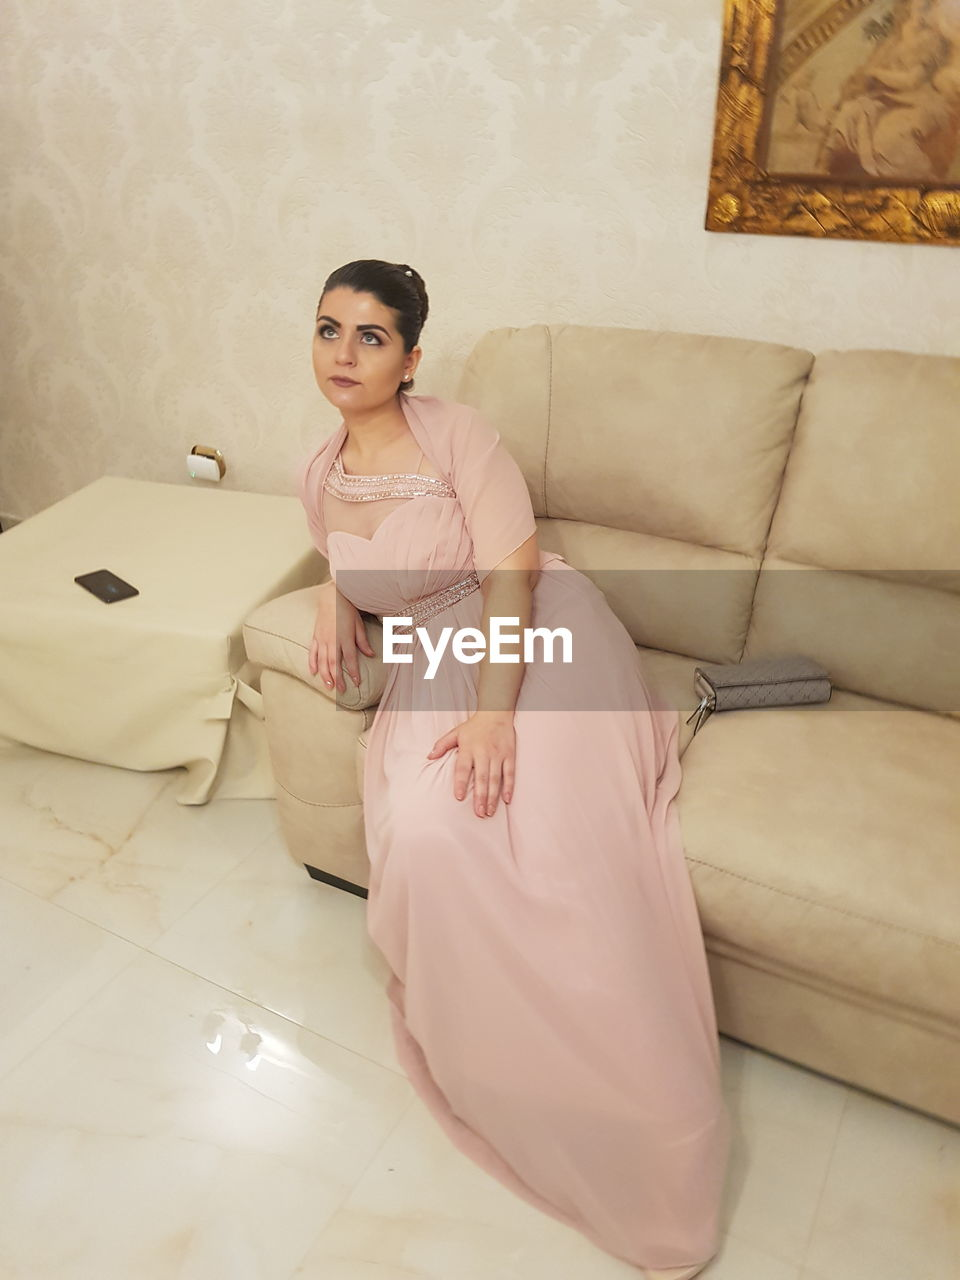 furniture, indoors, sofa, sitting, one person, domestic room, full length, lifestyles, home interior, looking at camera, women, young women, real people, young adult, leisure activity, front view, beautiful woman, relaxation, beauty, flooring